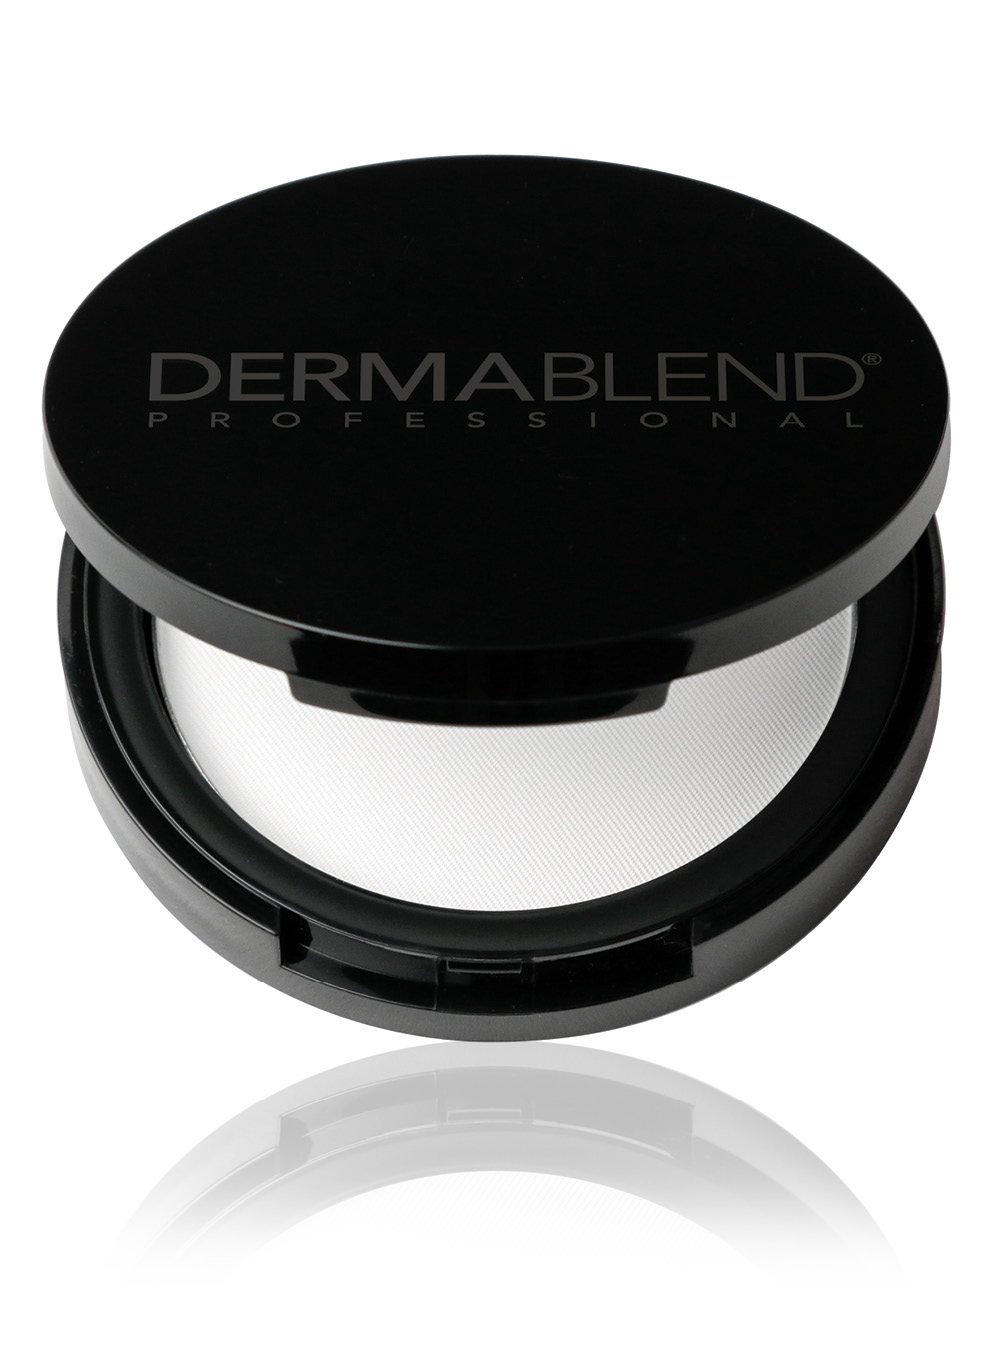 Dermablend Compact Setting Powder, 0.35 Oz.